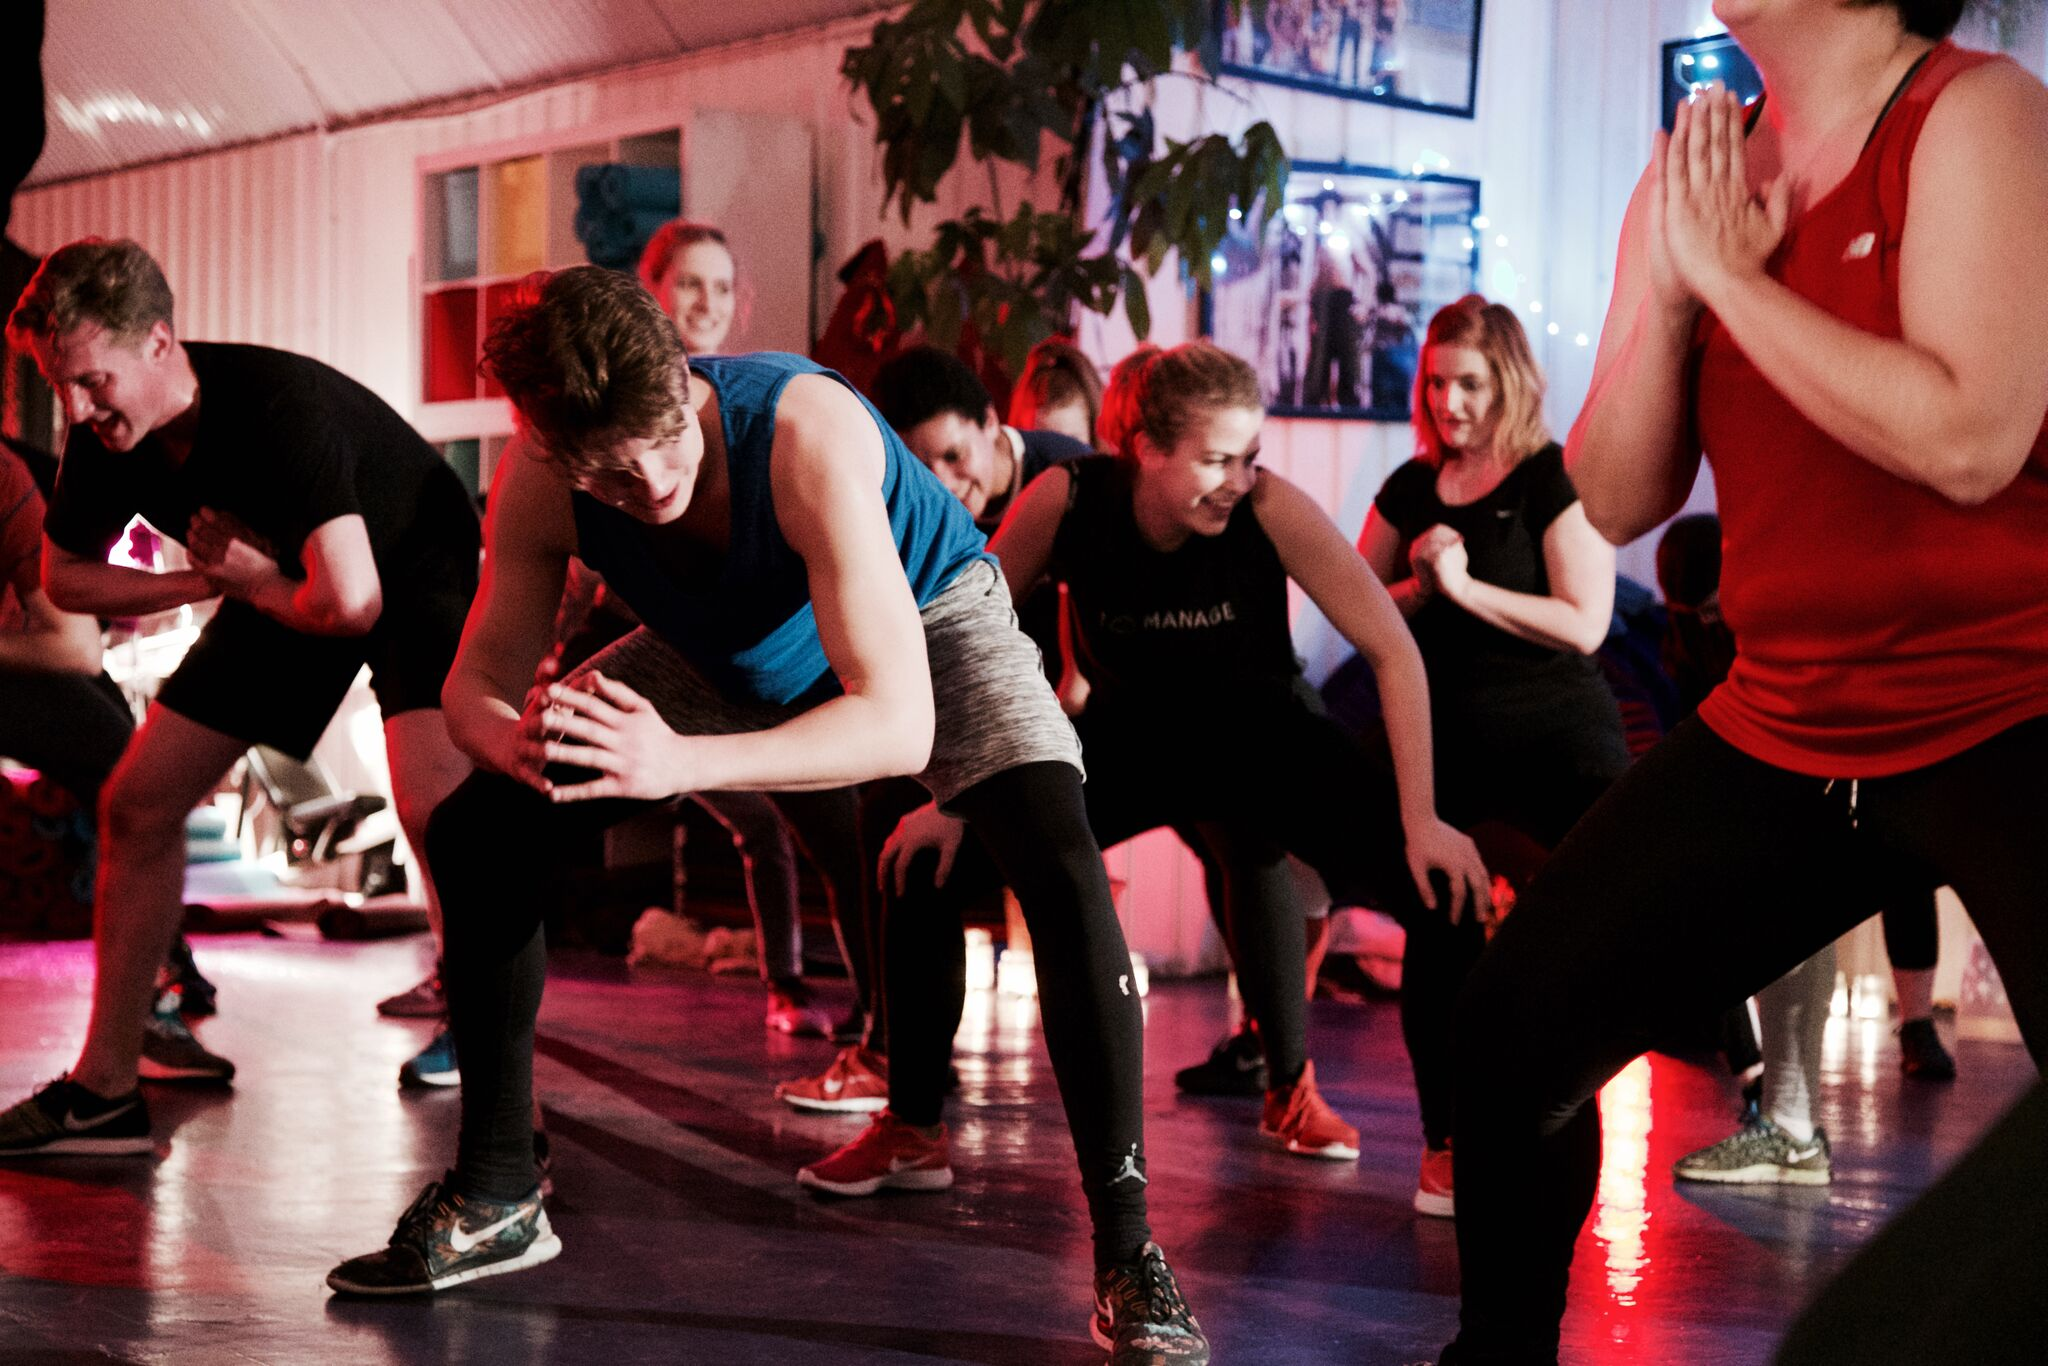 Try Something Different! - Check out our selection of original classes developed here at London Fields Fitness Studio and add some flavour to your fitlife...